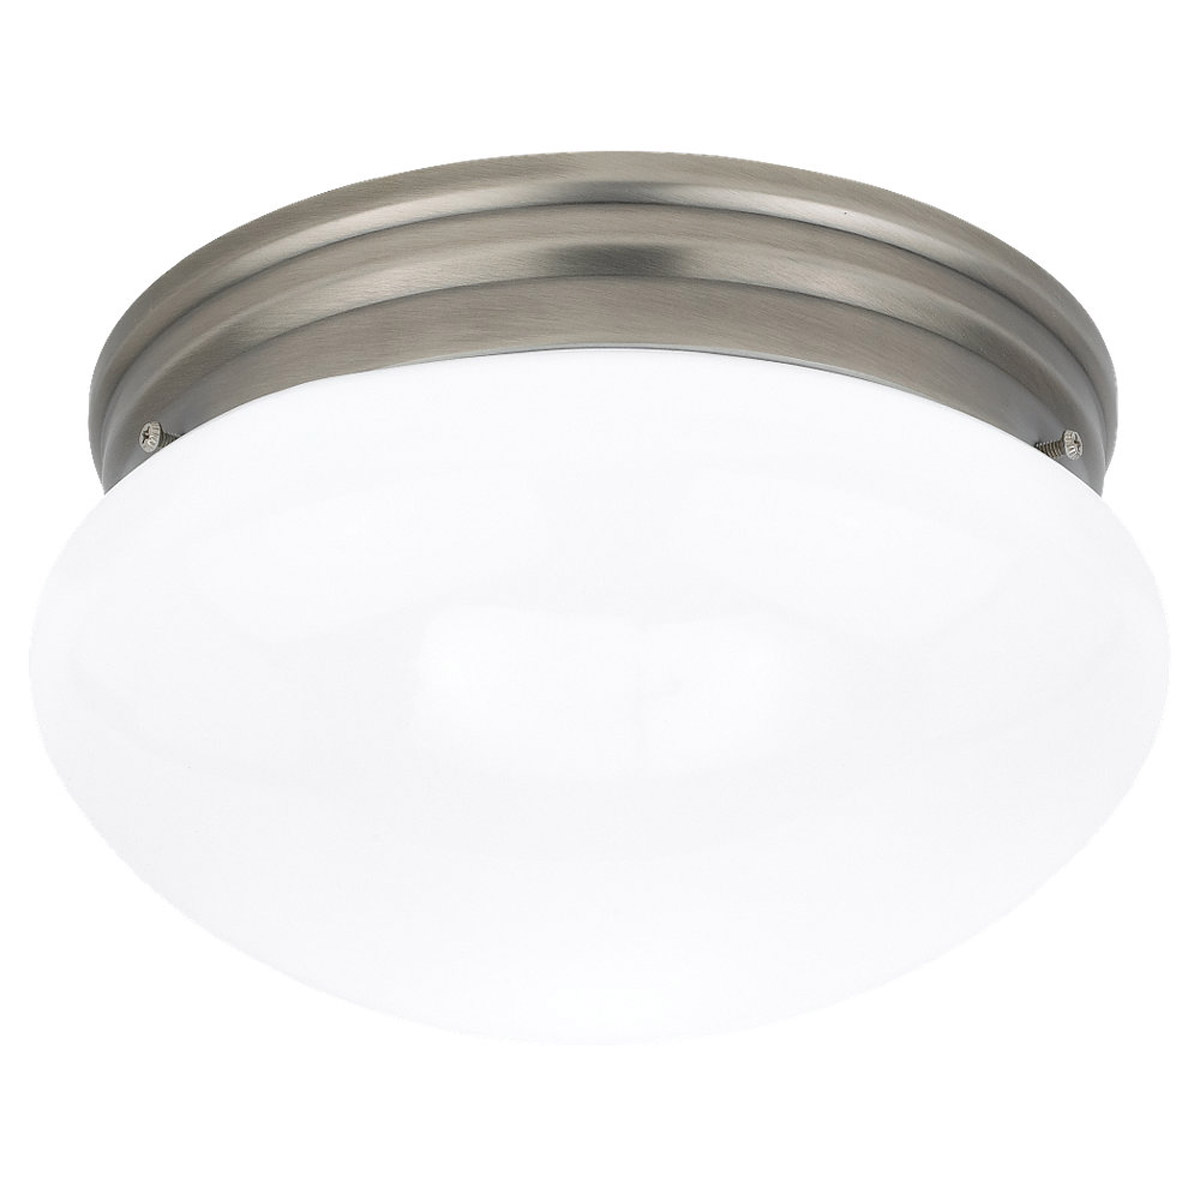 Sea Gull Lighting Webster 2 Light Flush Mount in Antique Brushed Nickel 5328-965